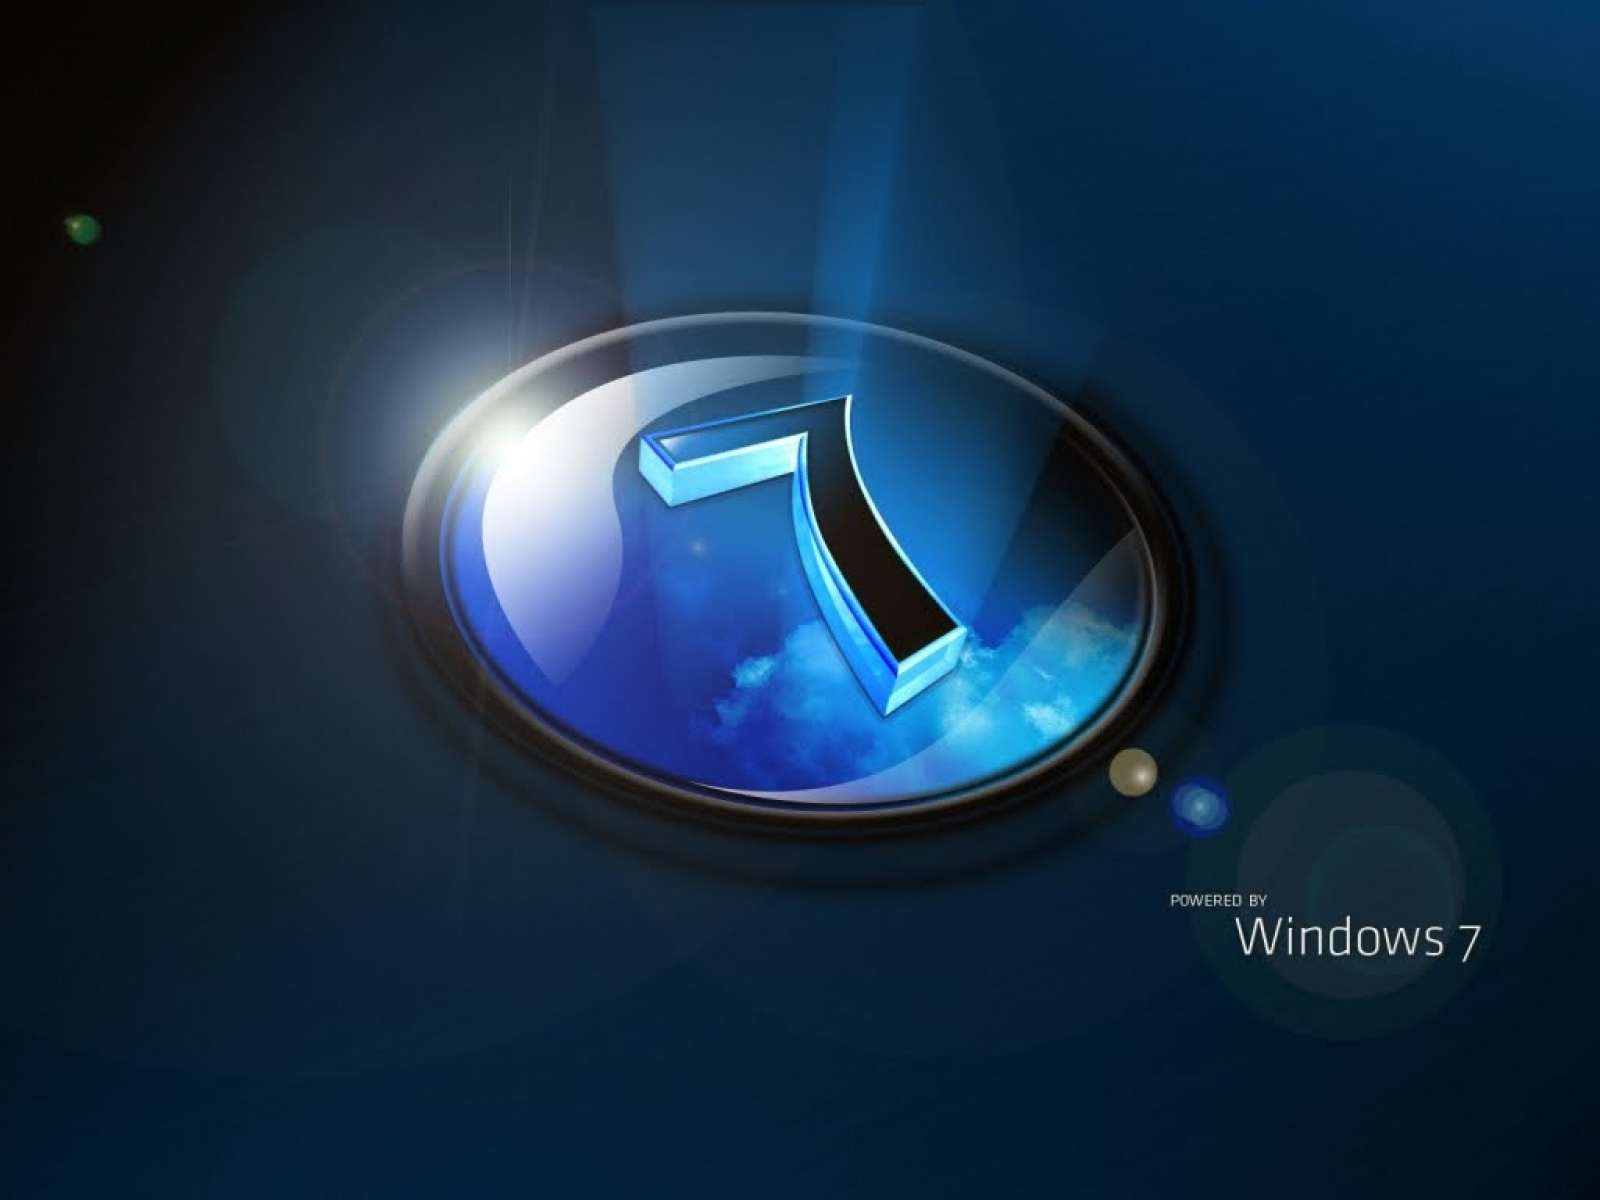 animation hd wallpaper Windows 7 Animated Wallpaper 1600x1200